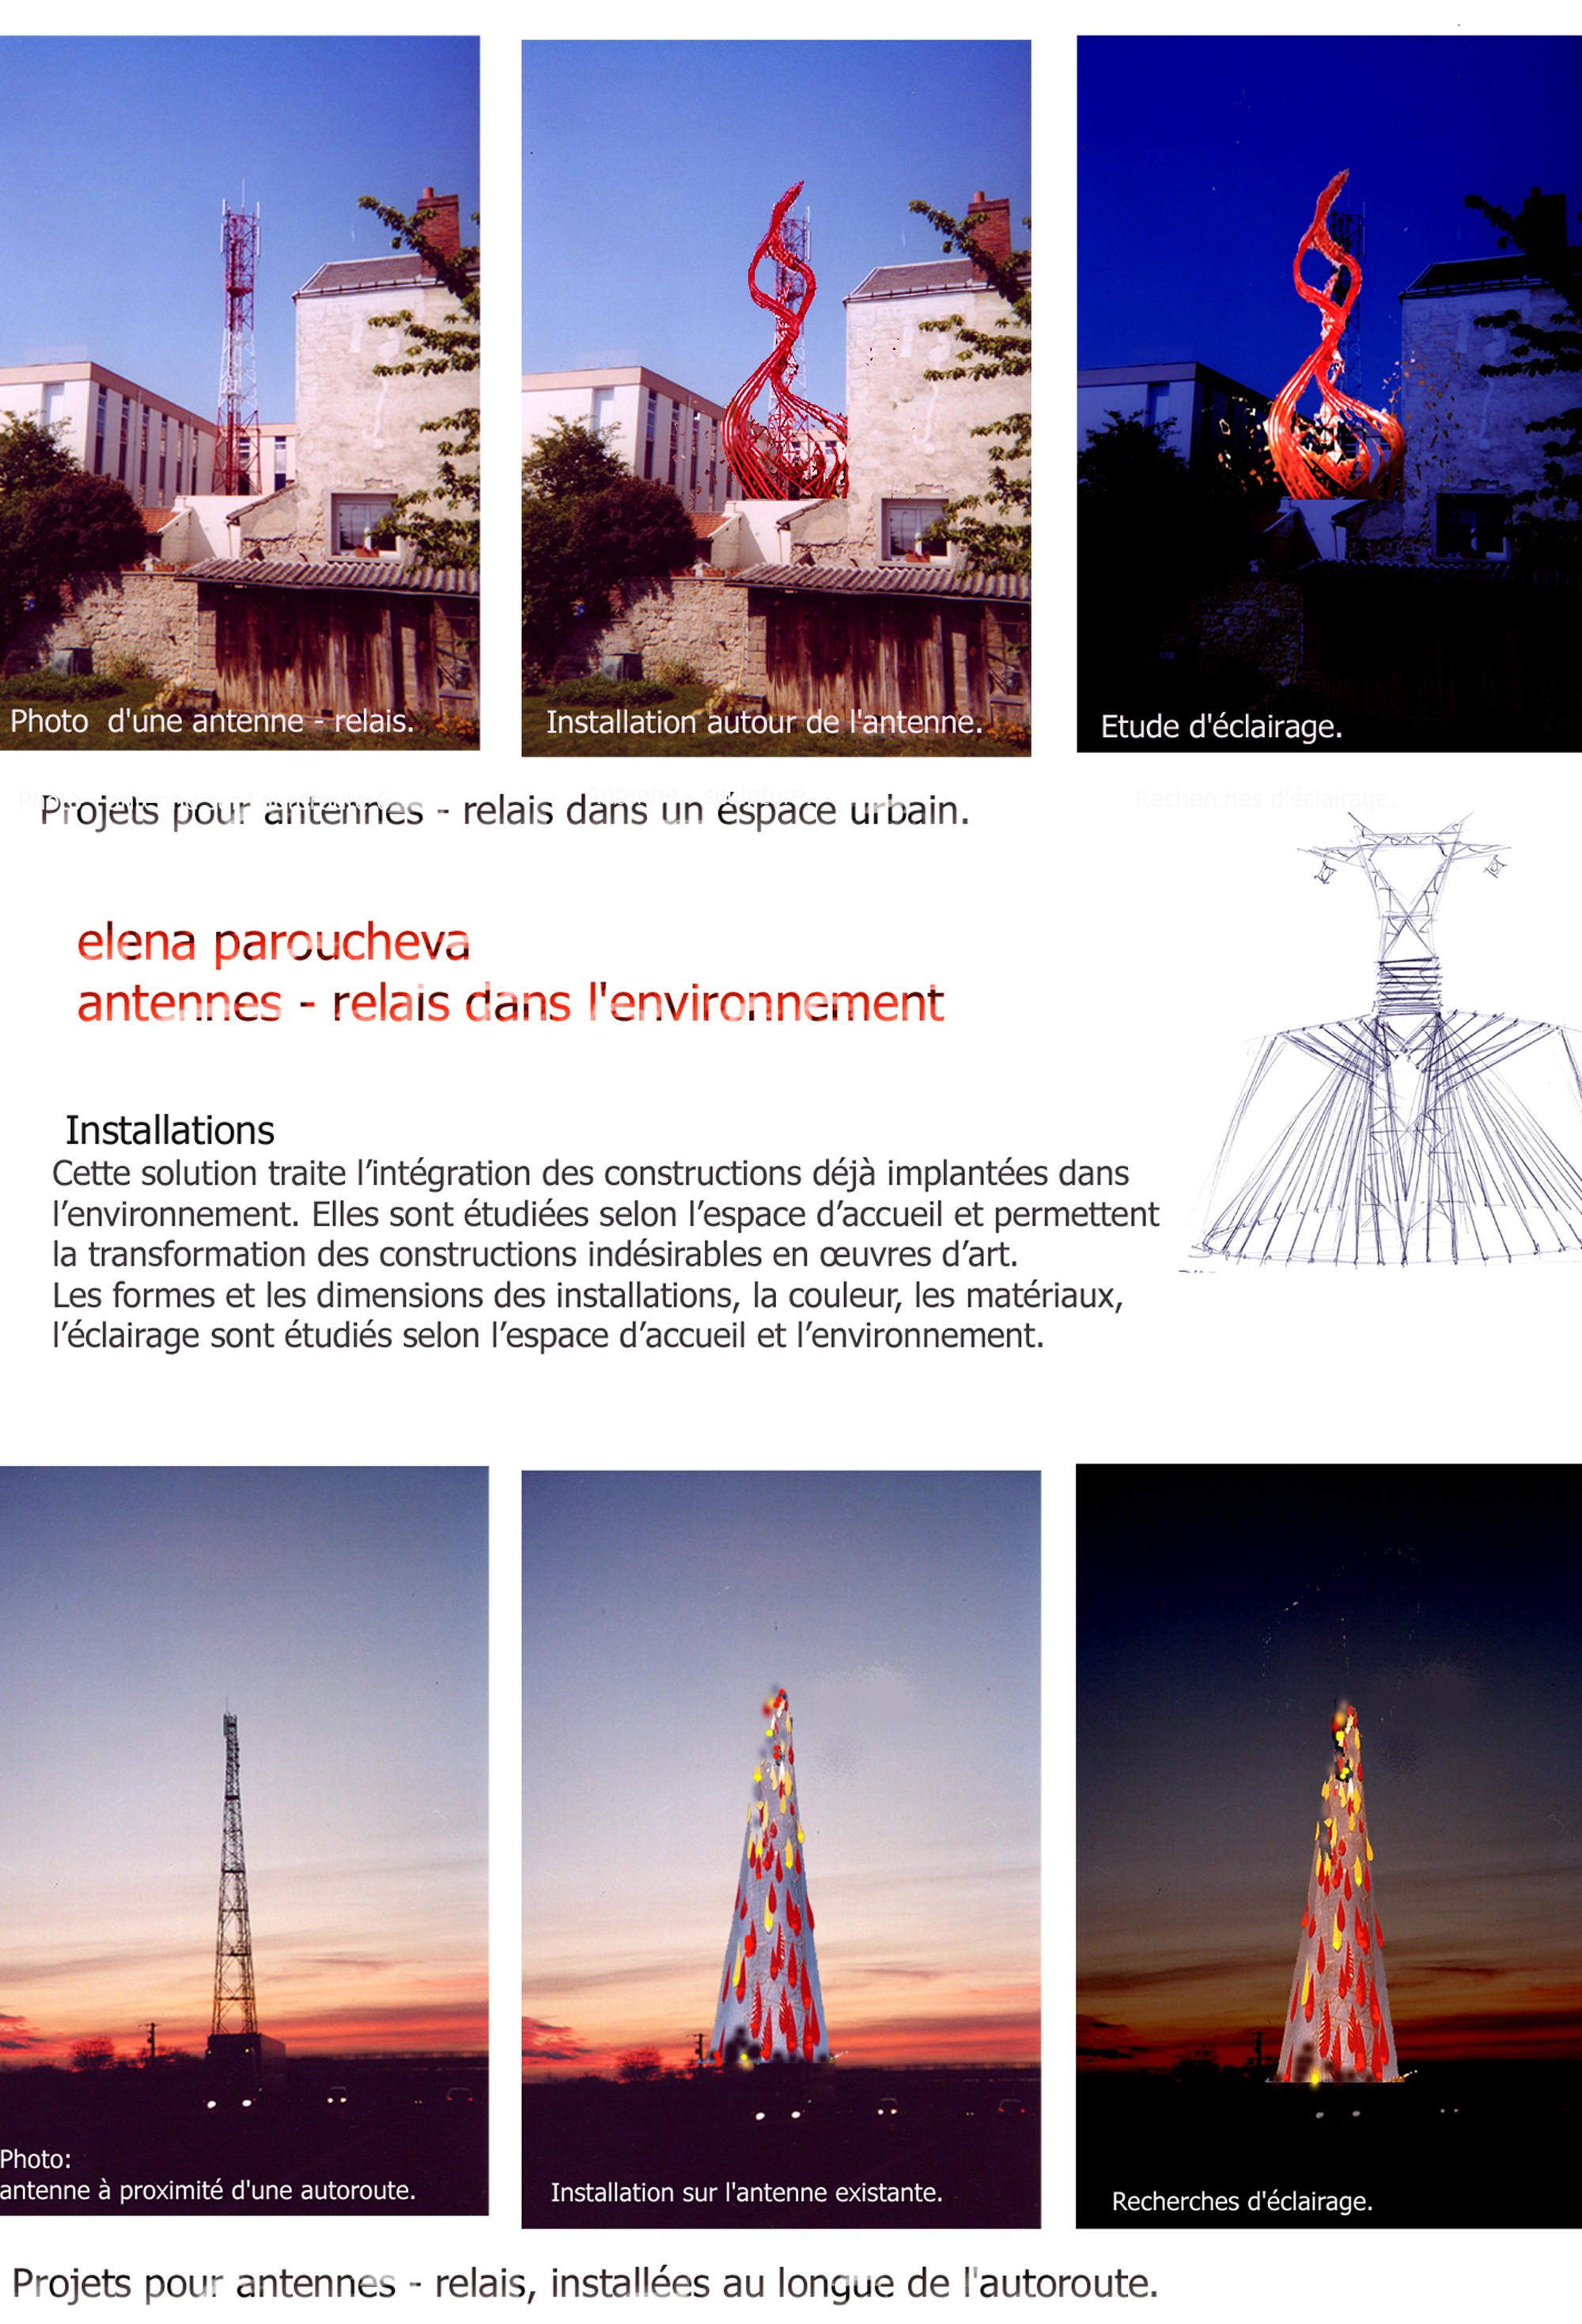 Telecom towers, projects